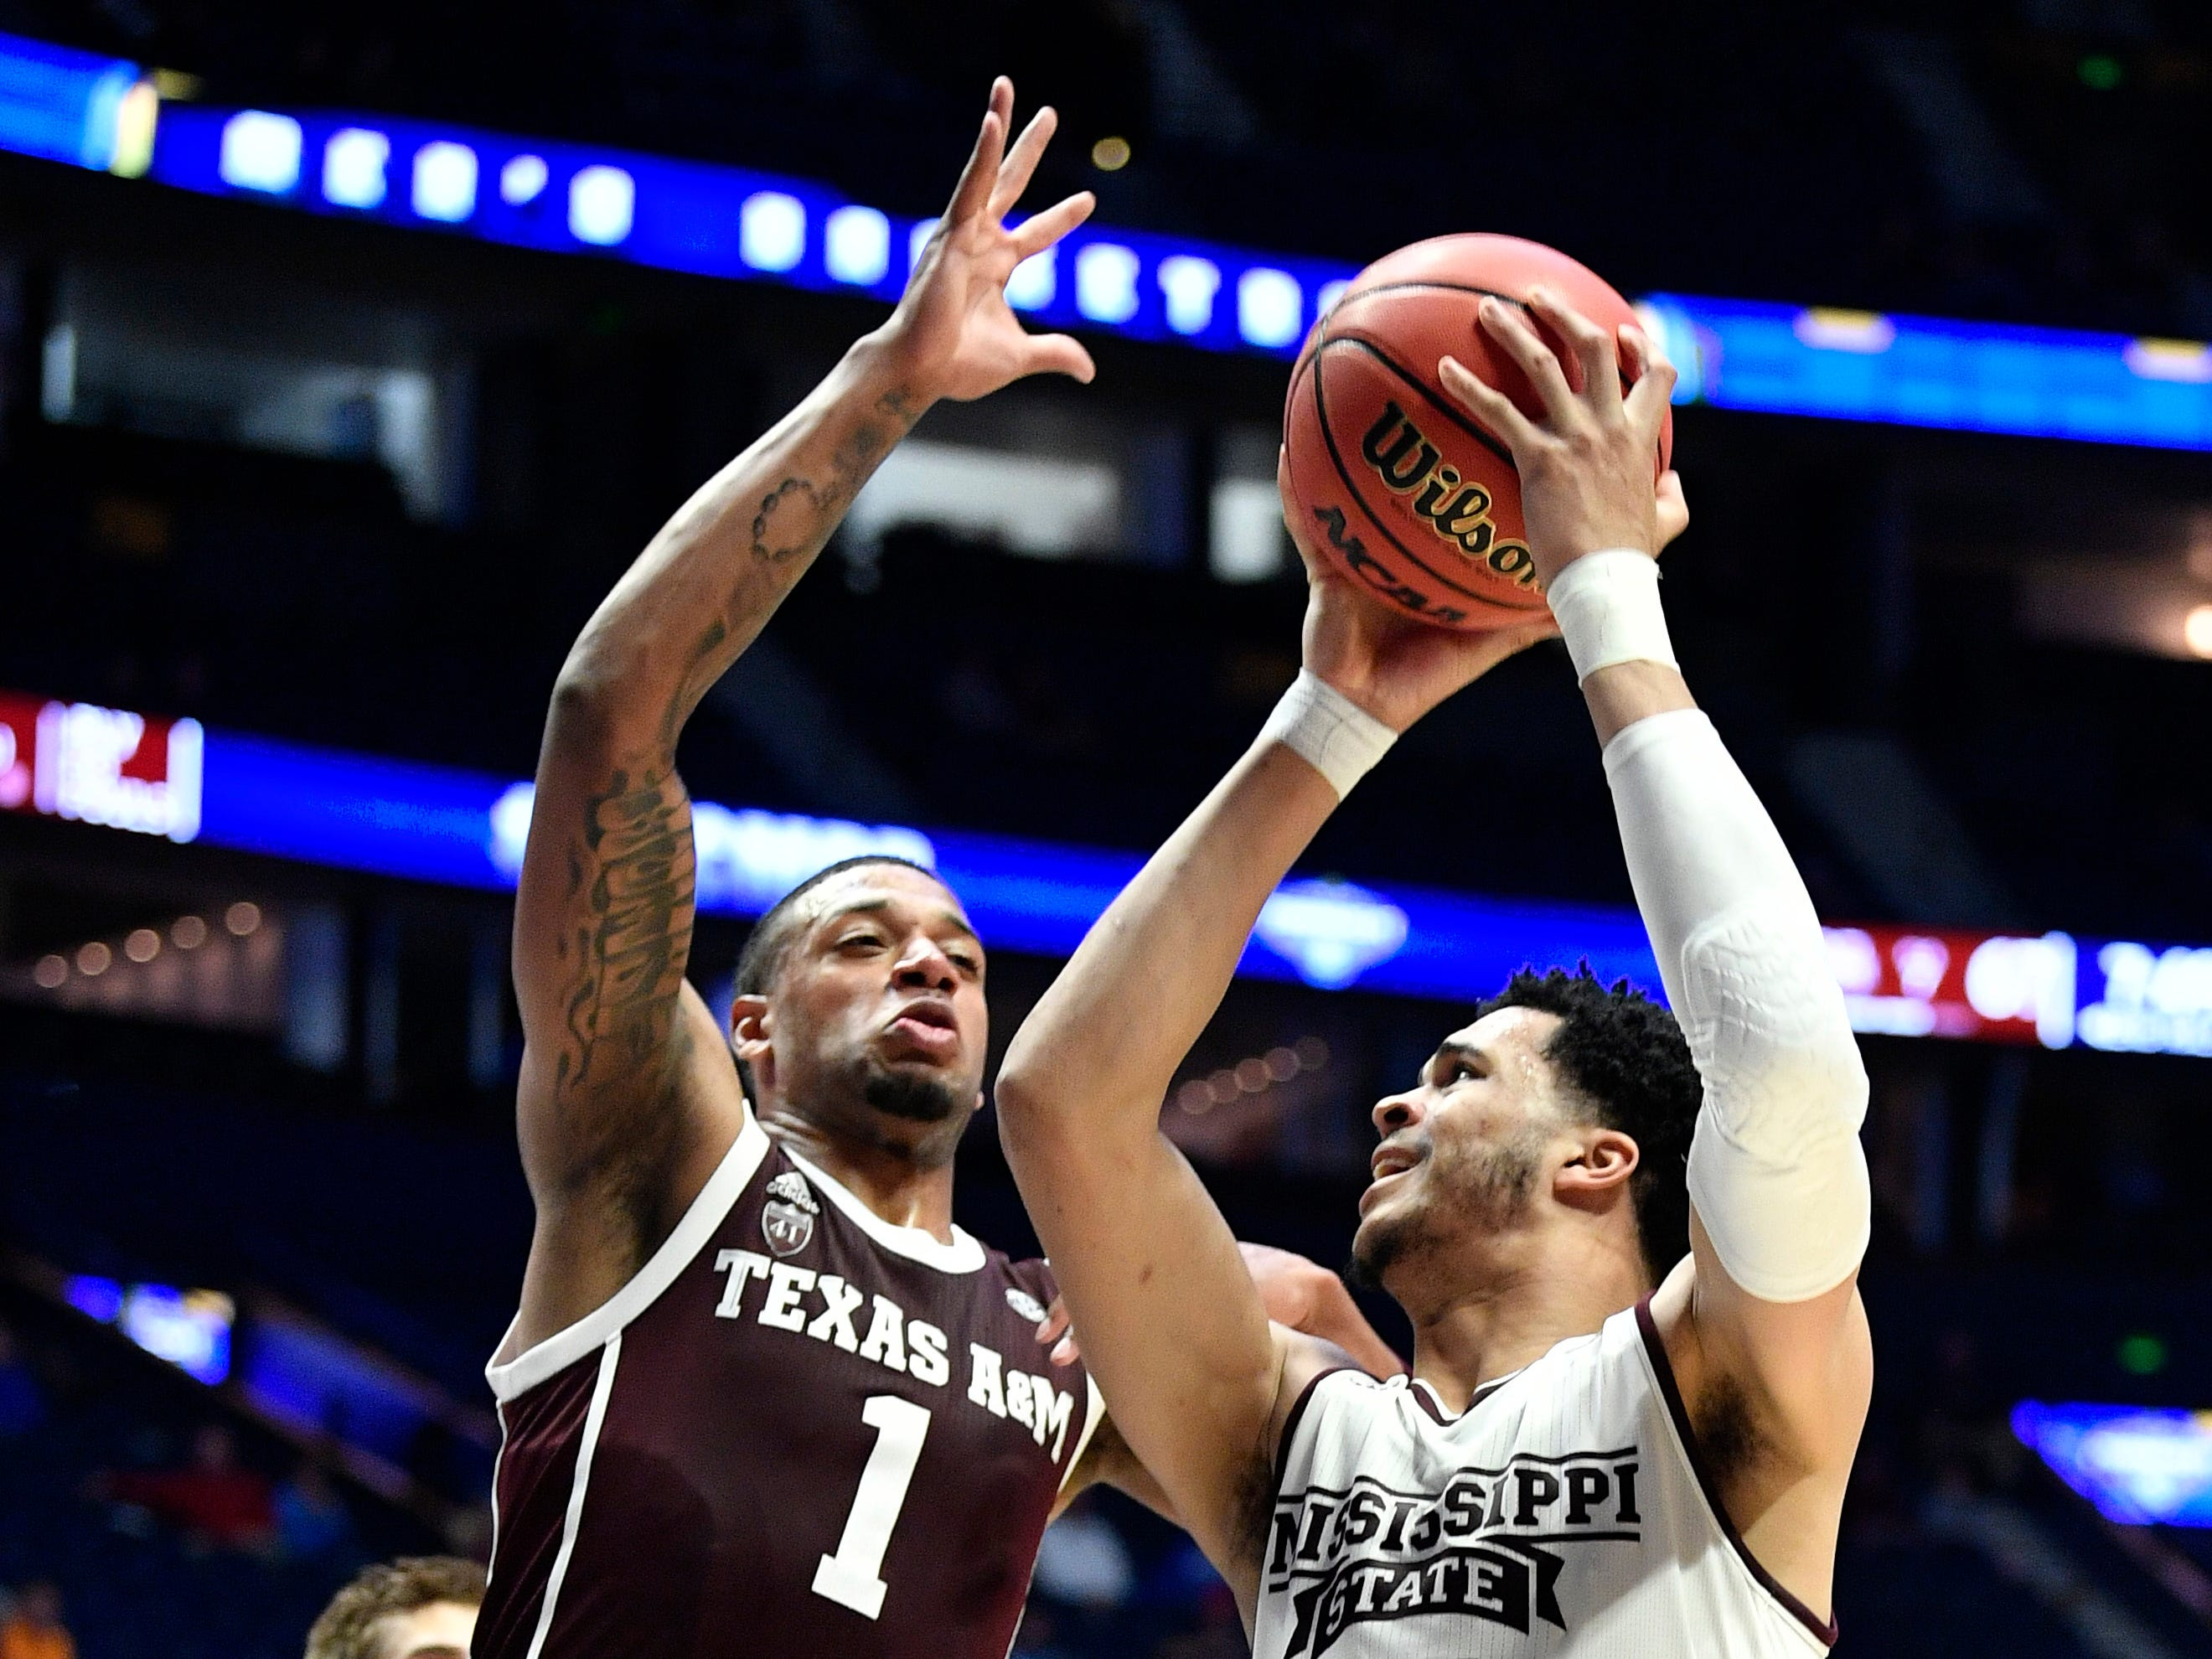 Mississippi State guard Quinndary Weatherspoon (11) looks to shoot defended by Texas A&M guard Savion Flagg (1) during the second half of the SEC Men's Basketball Tournament game at Bridgestone Arena in Nashville, Tenn., Thursday, March 14, 2019.